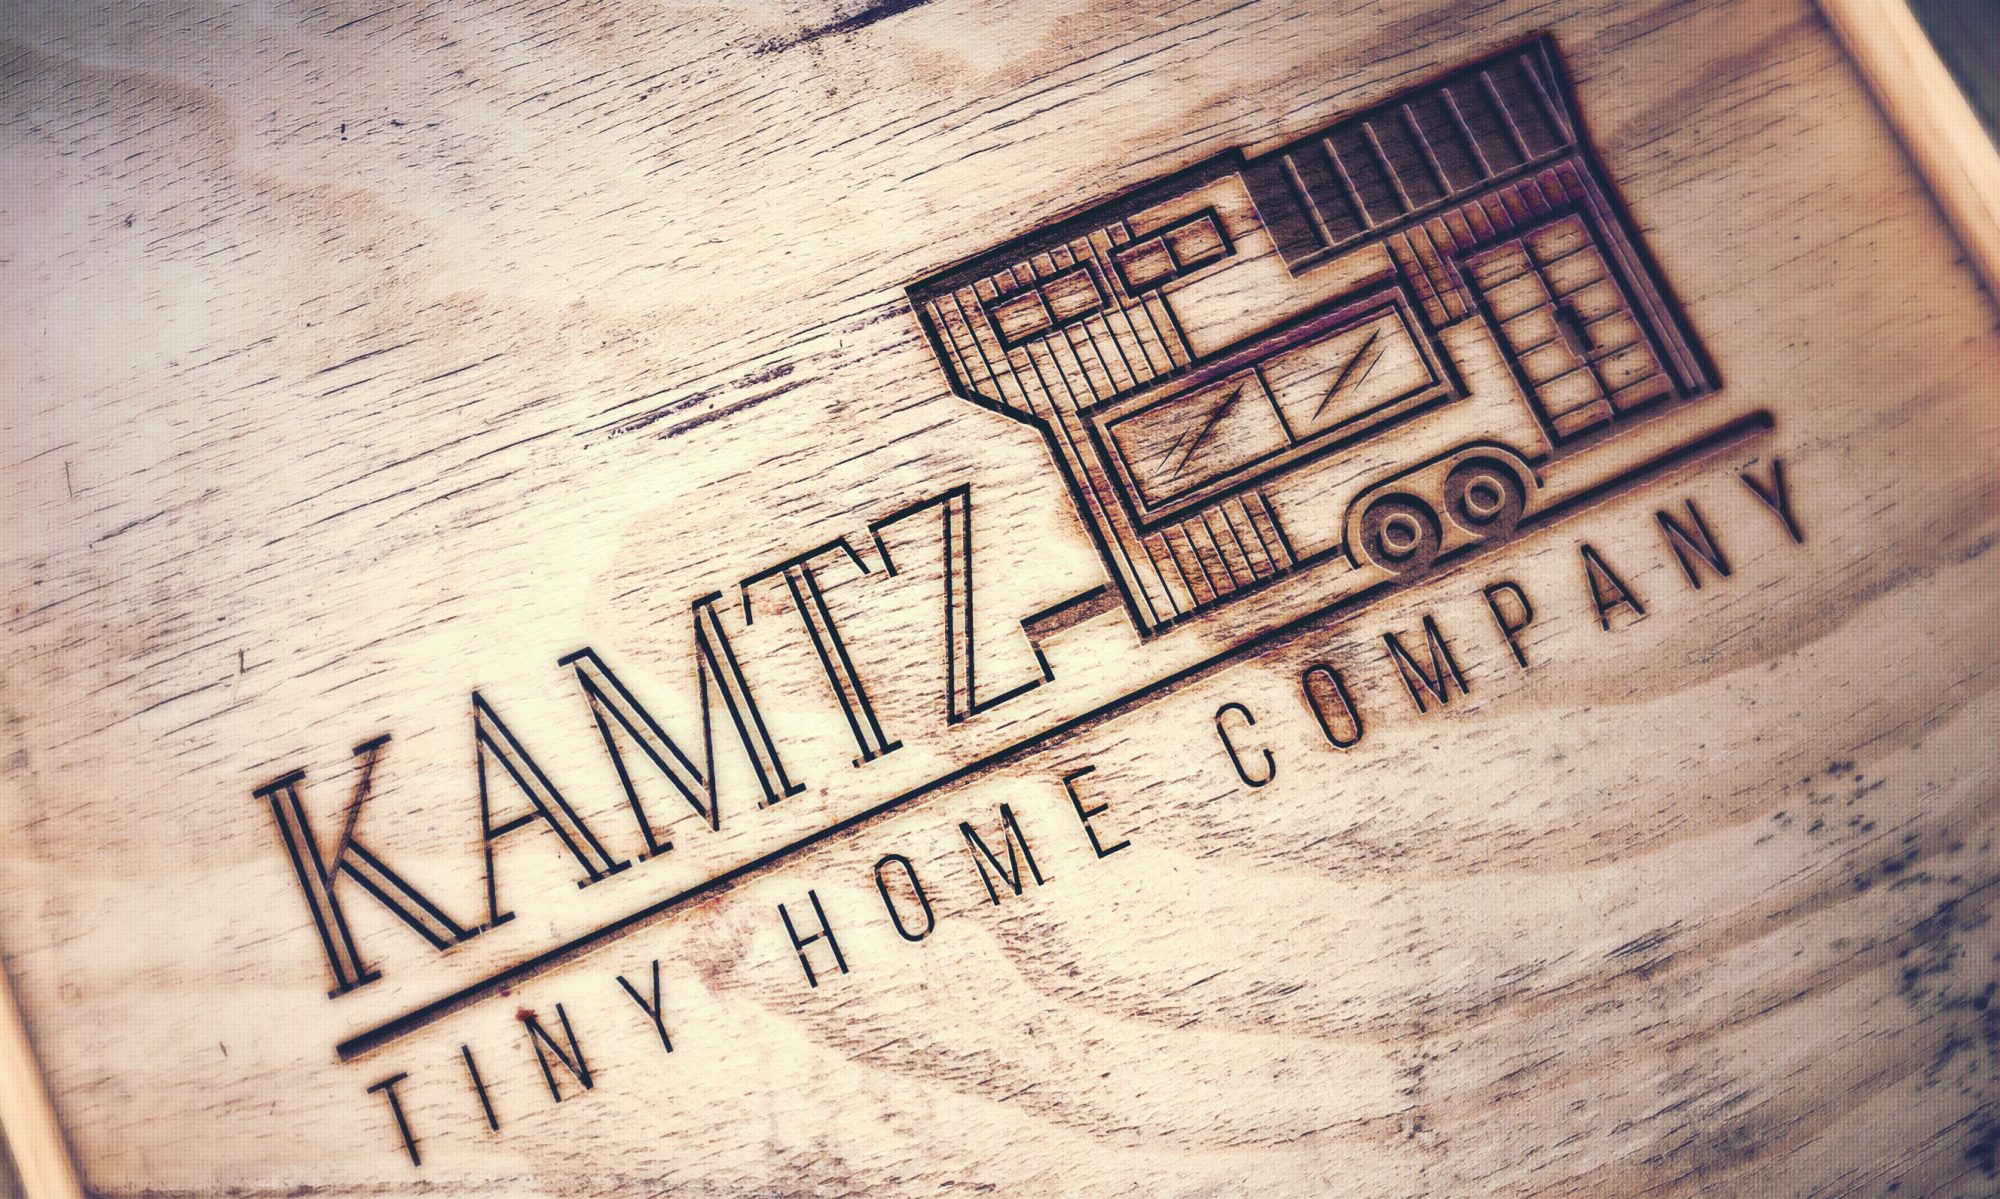 Kamtz Tiny Homes